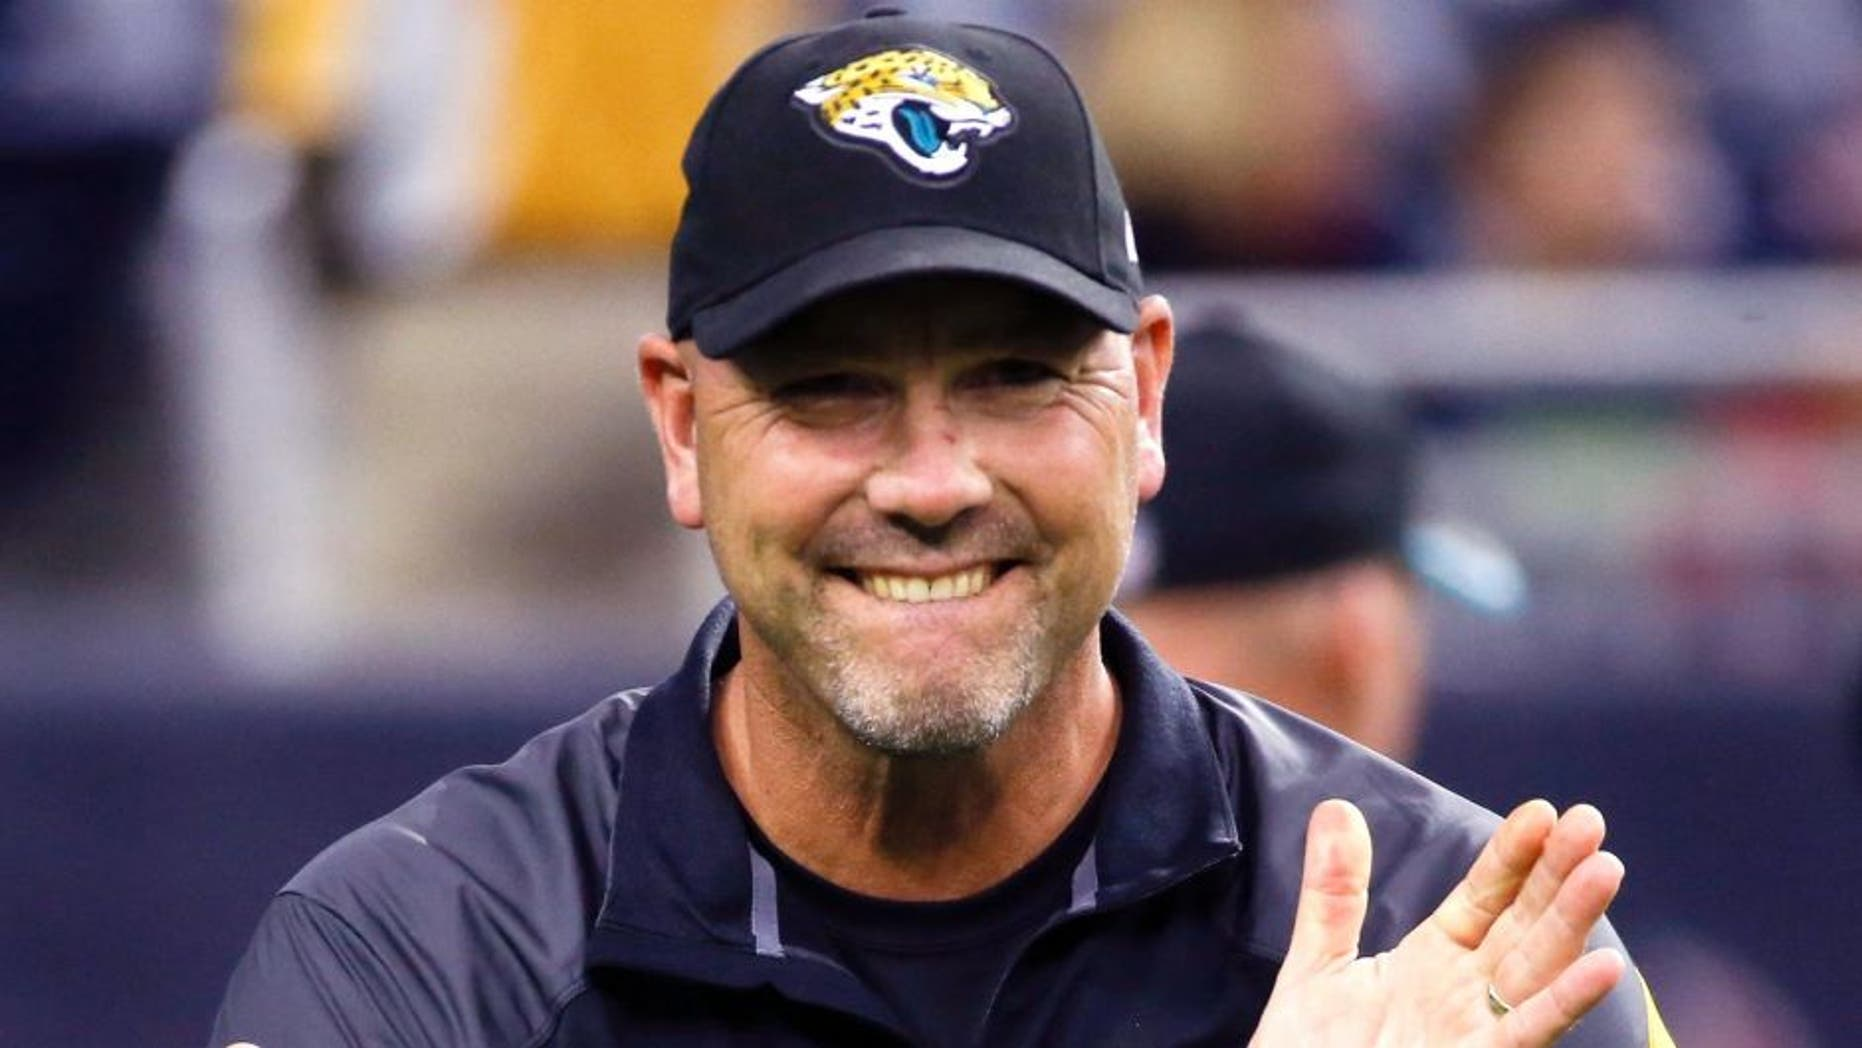 Dec 28, 2014; Houston, TX, USA; Jacksonville Jaguars head coach Gus Bradley before the game against the Houston Texans at NRG Stadium. Mandatory Credit: Kevin Jairaj-USA TODAY Sports